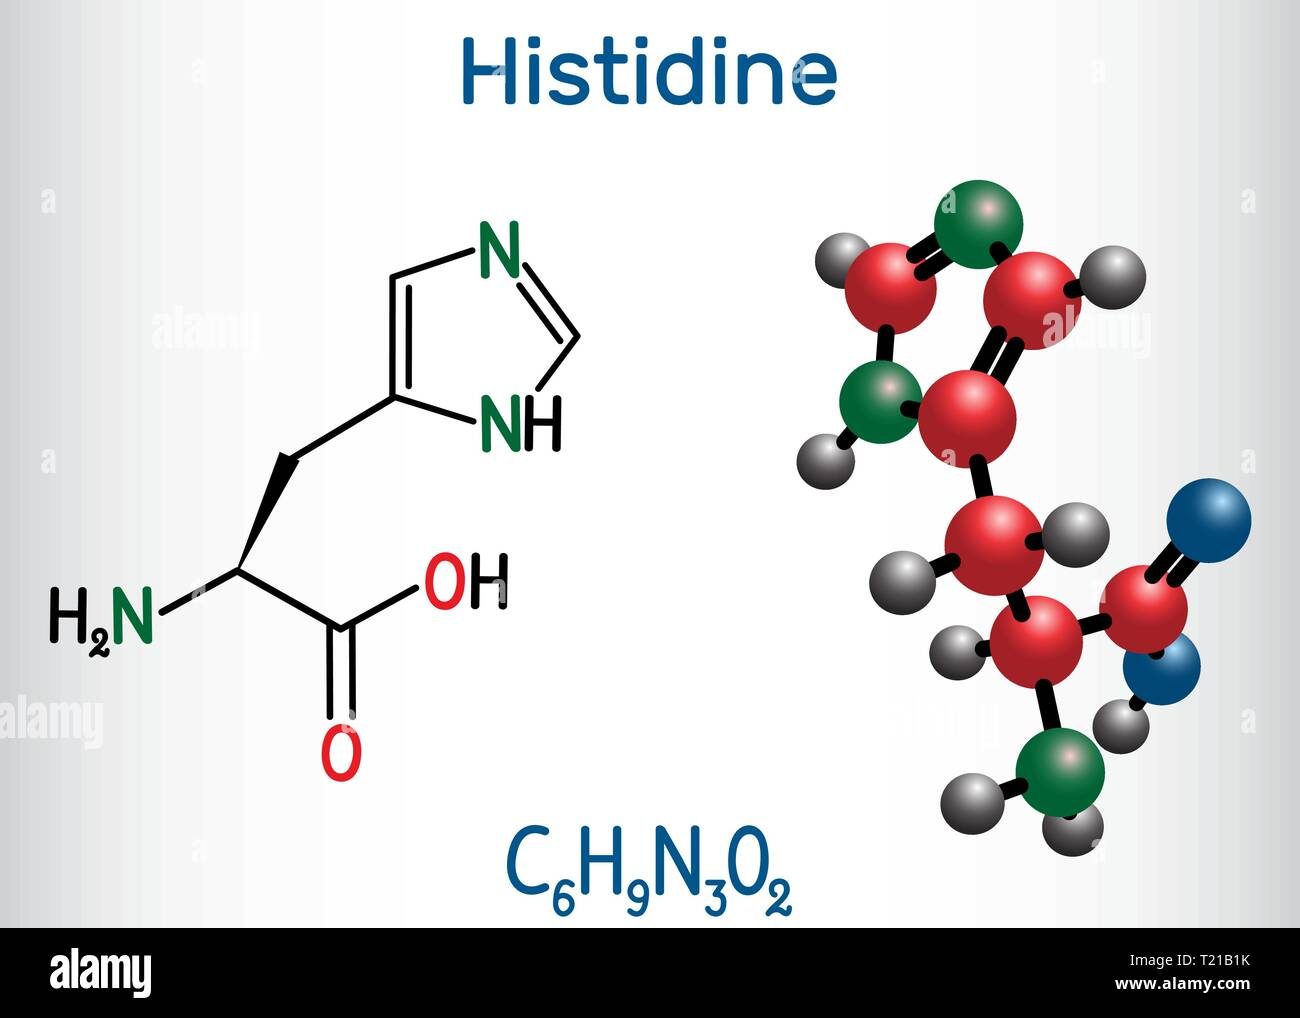 Histidine (L- histidine , His, H) amino acid molecule. It is used in the biosynthesis of proteins. Structural chemical formula and molecule model. Vec - Stock Image